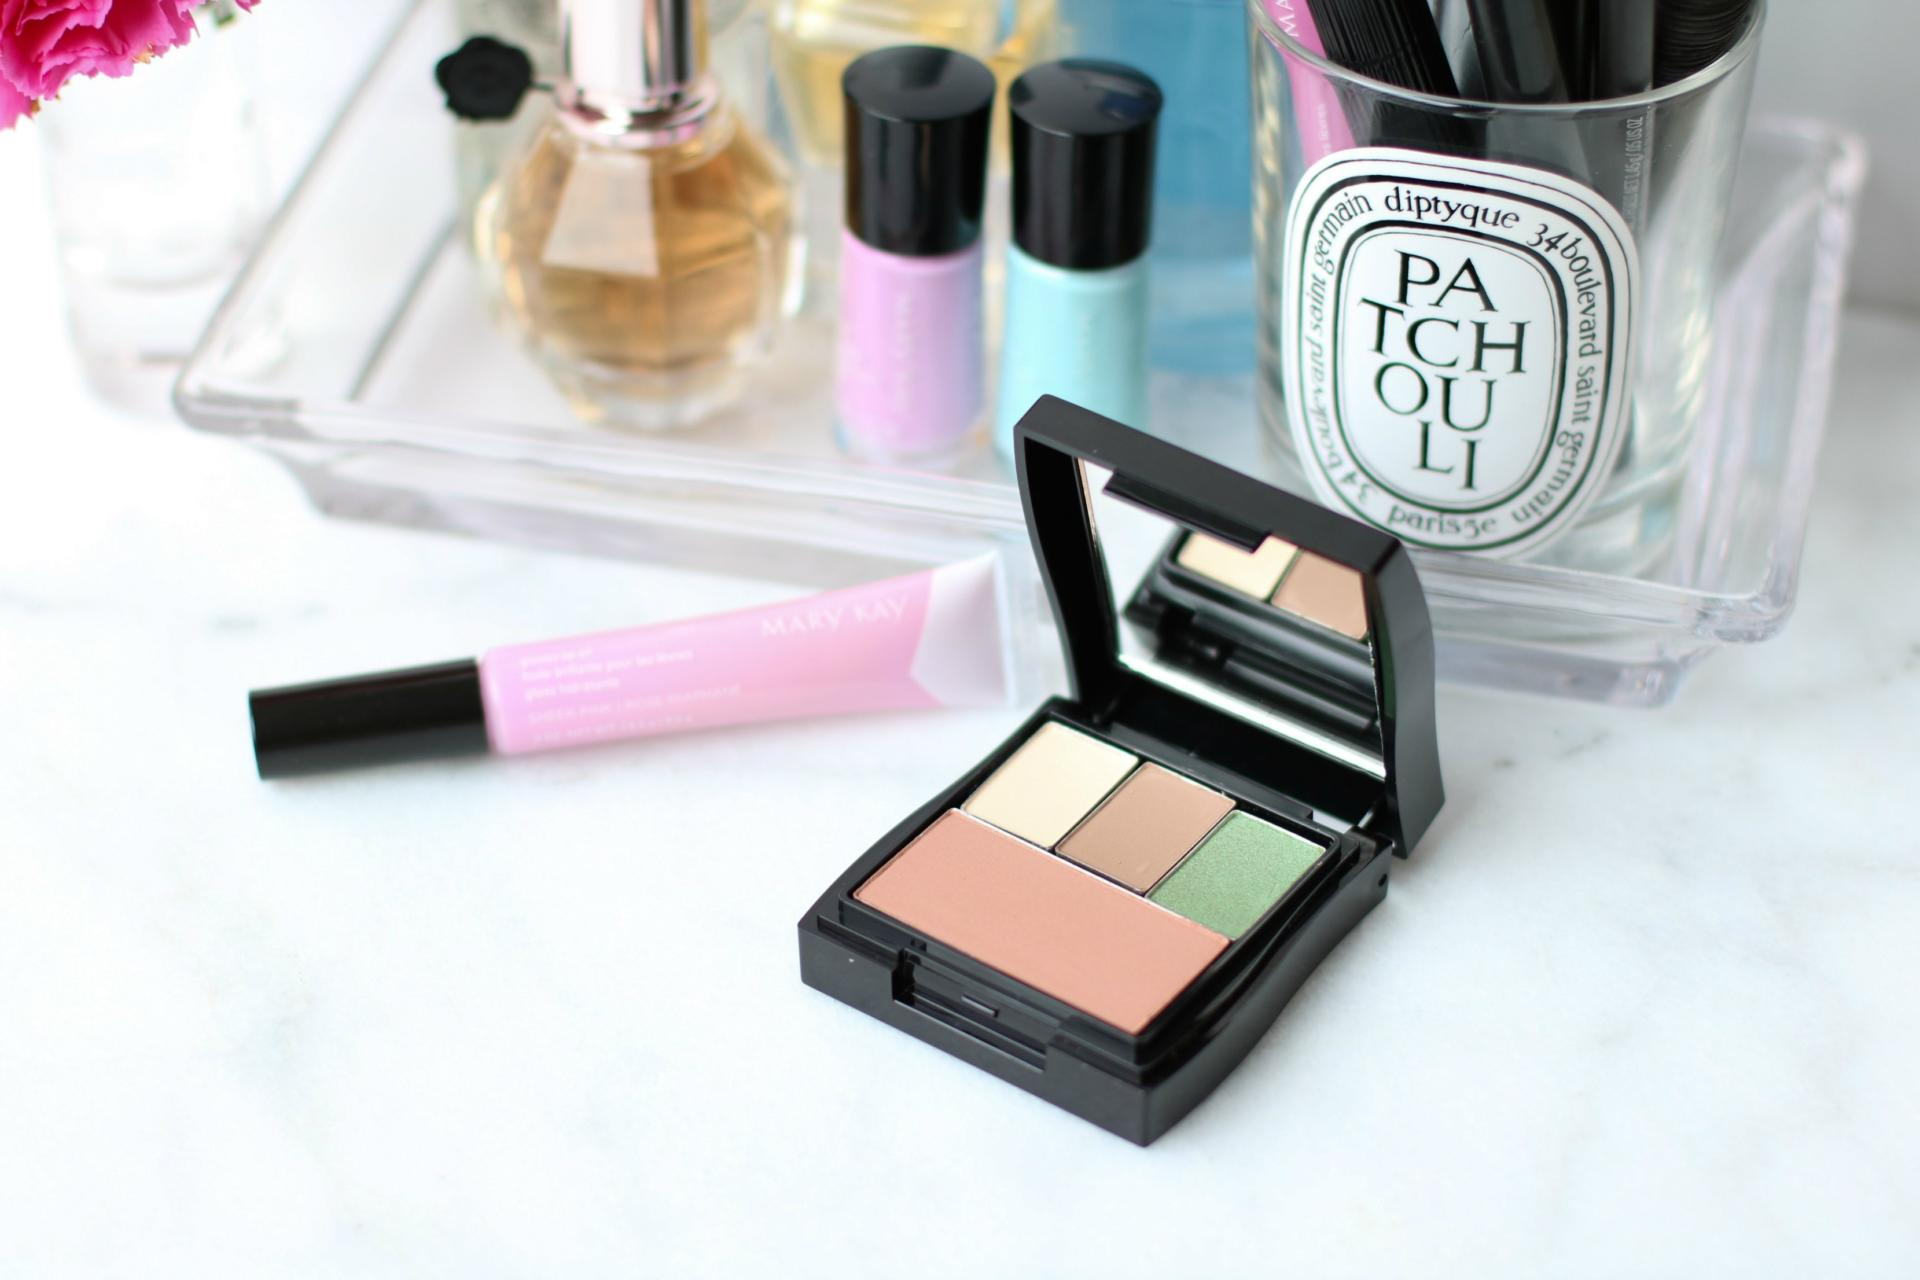 Mary Kay's collection of summer makeup is so pretty and cute - you gotta try them NOW!